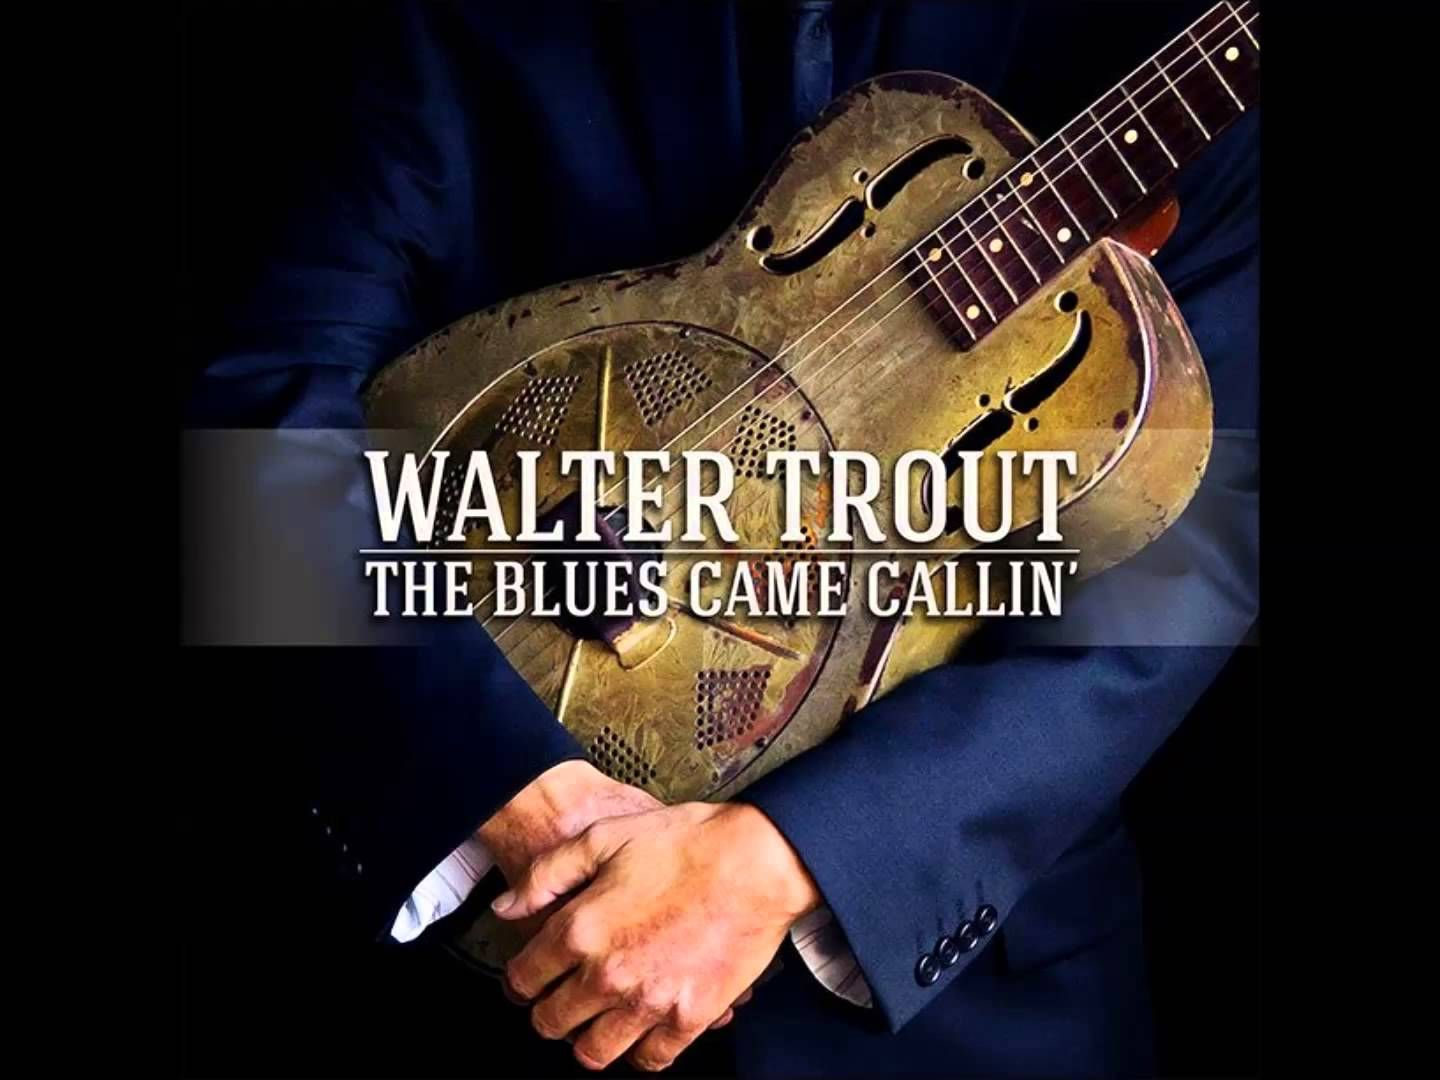 WALTER TROUT FEAT. JOHN MAYALL - THE BLUES CAME CALLIN'